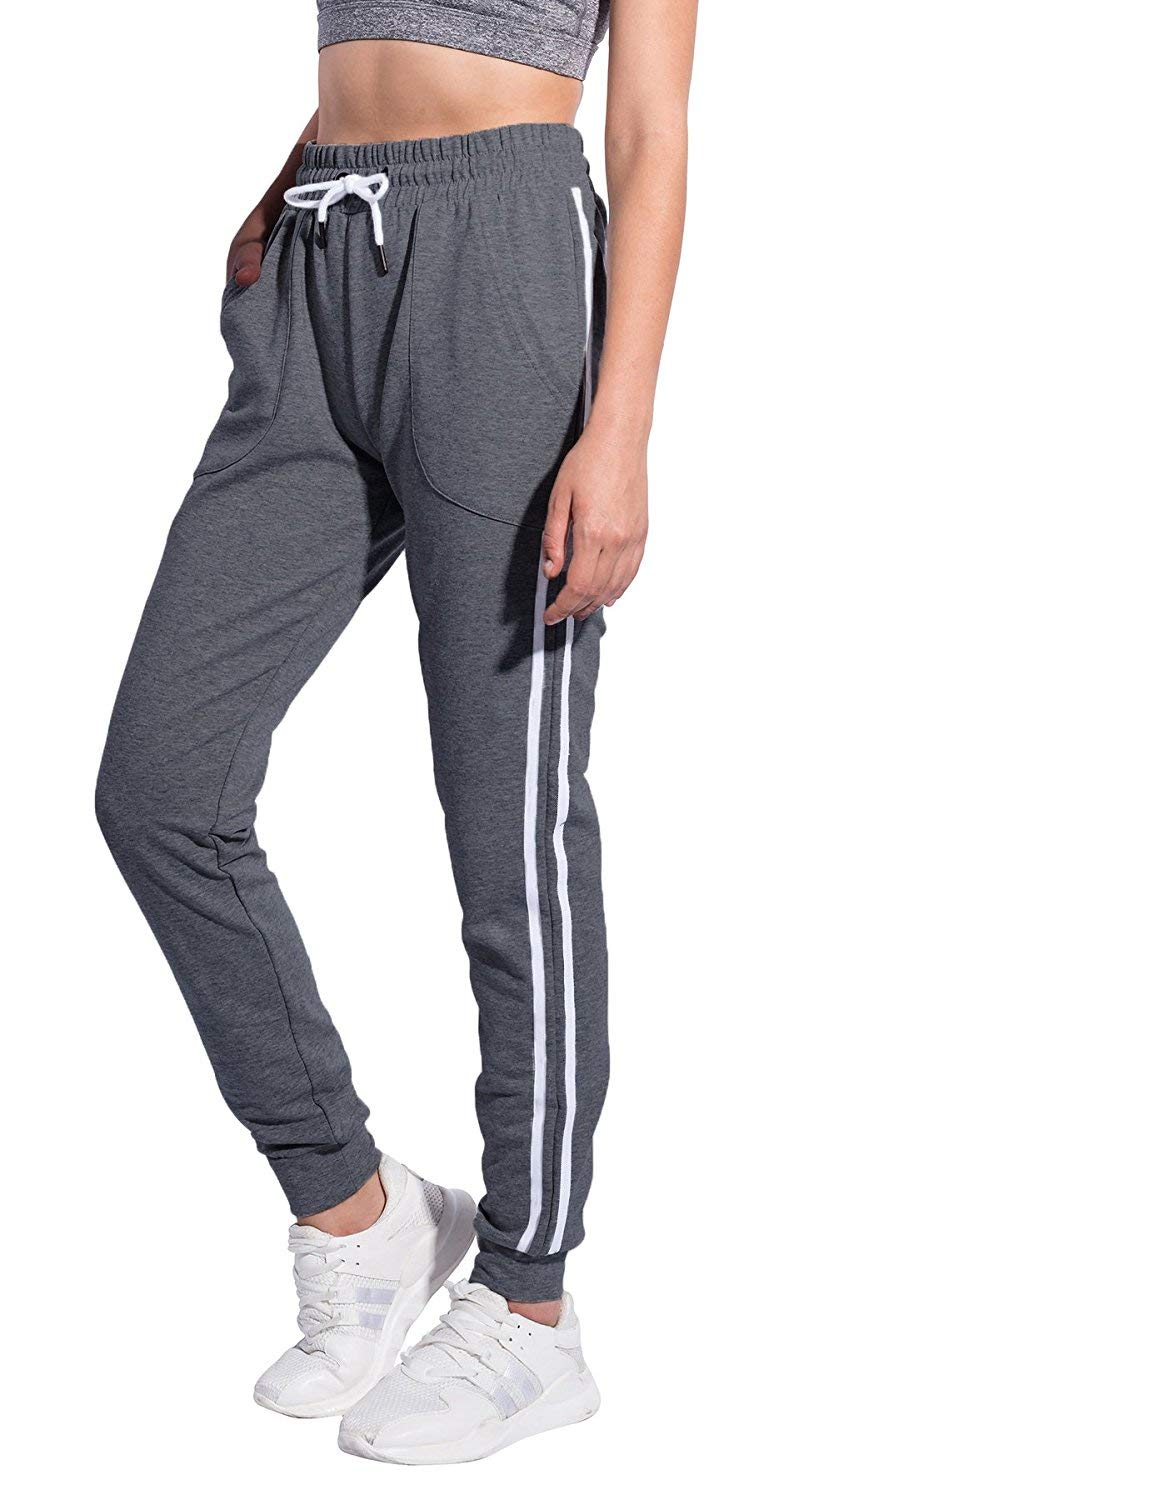 SUNNYME Women's Sweatpants Joggers Pants Drawstring Slim Fit Trousers With Pockets Dark Grey 4 M